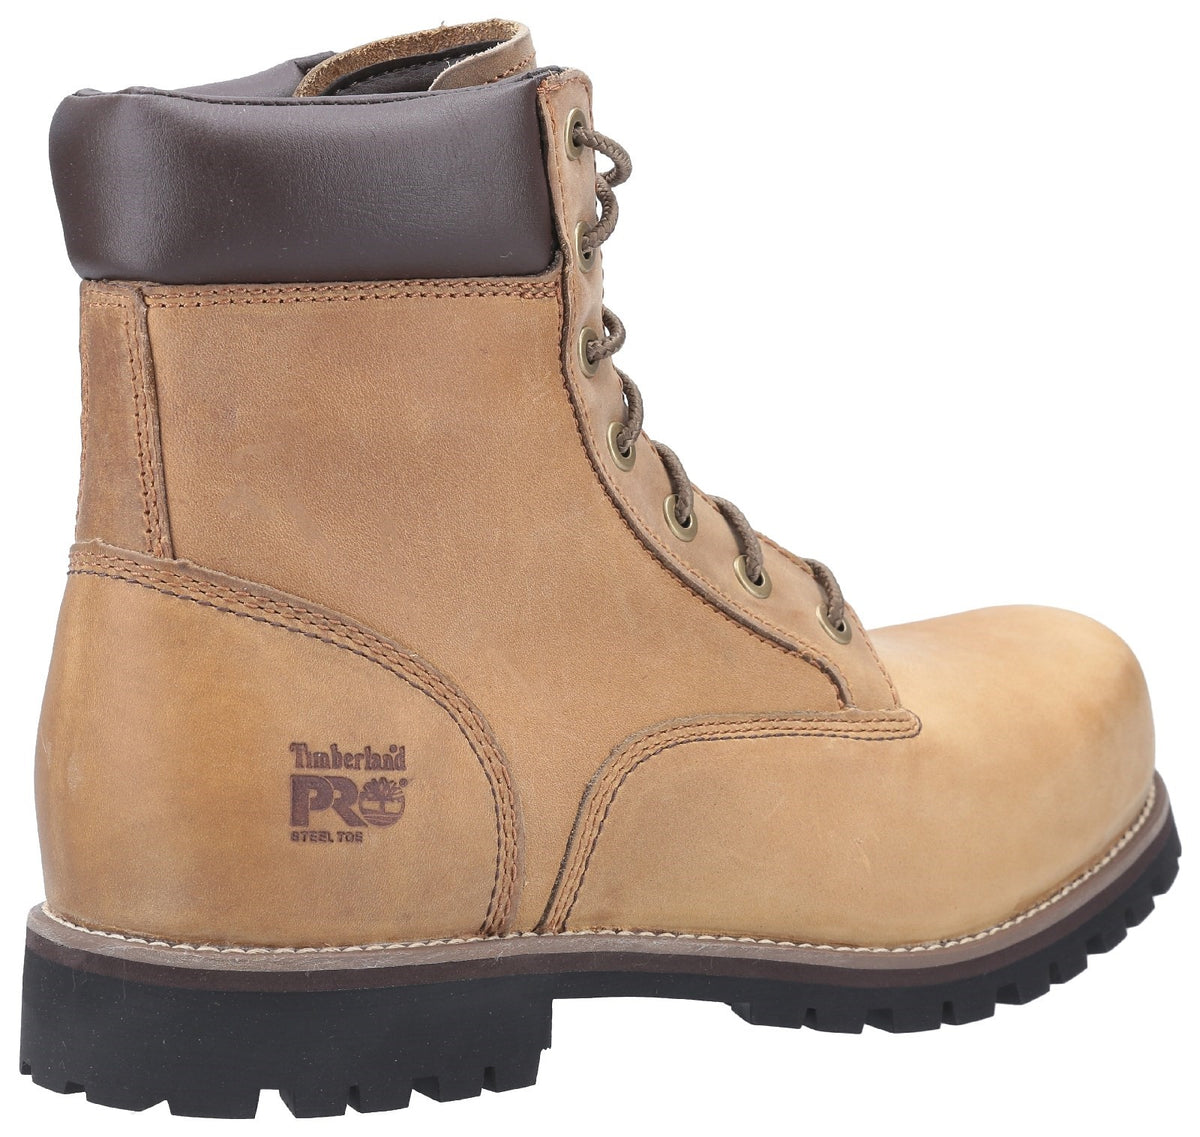 434b22aeaf5 Timberland Pro Eagle Safety Boot